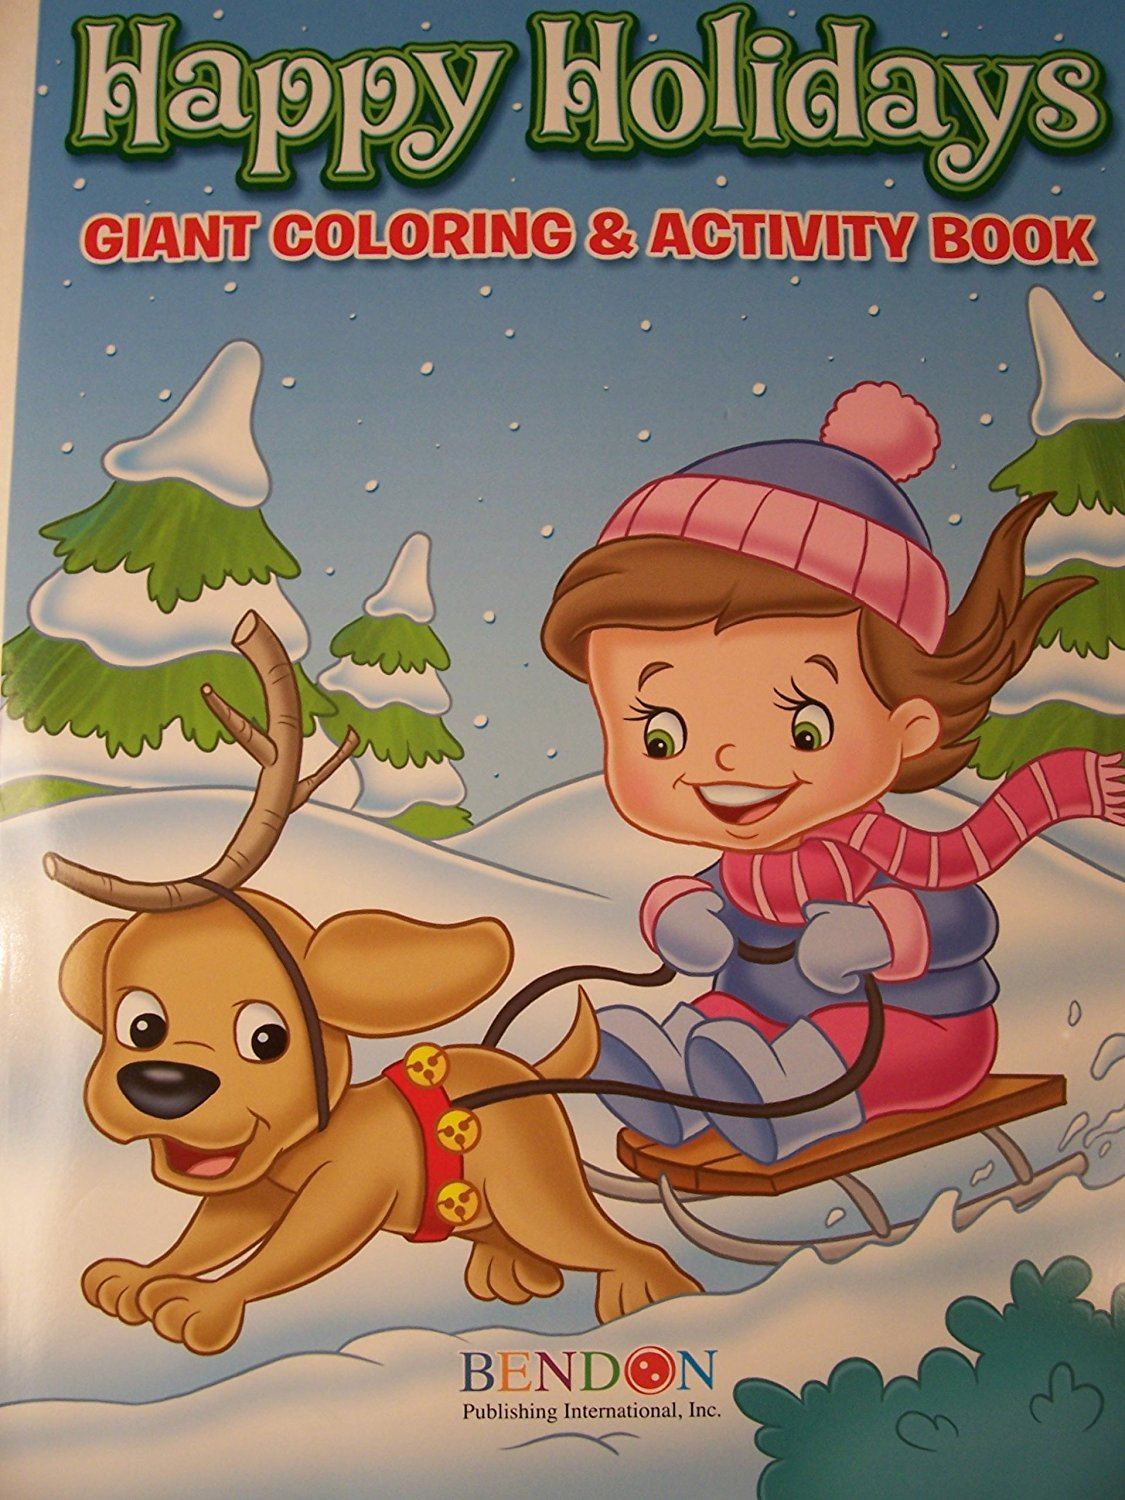 Happy Holidays 160 Page Giant Coloring and Activity Book ~ Christmas Edition (Girl and Dog Sleding)